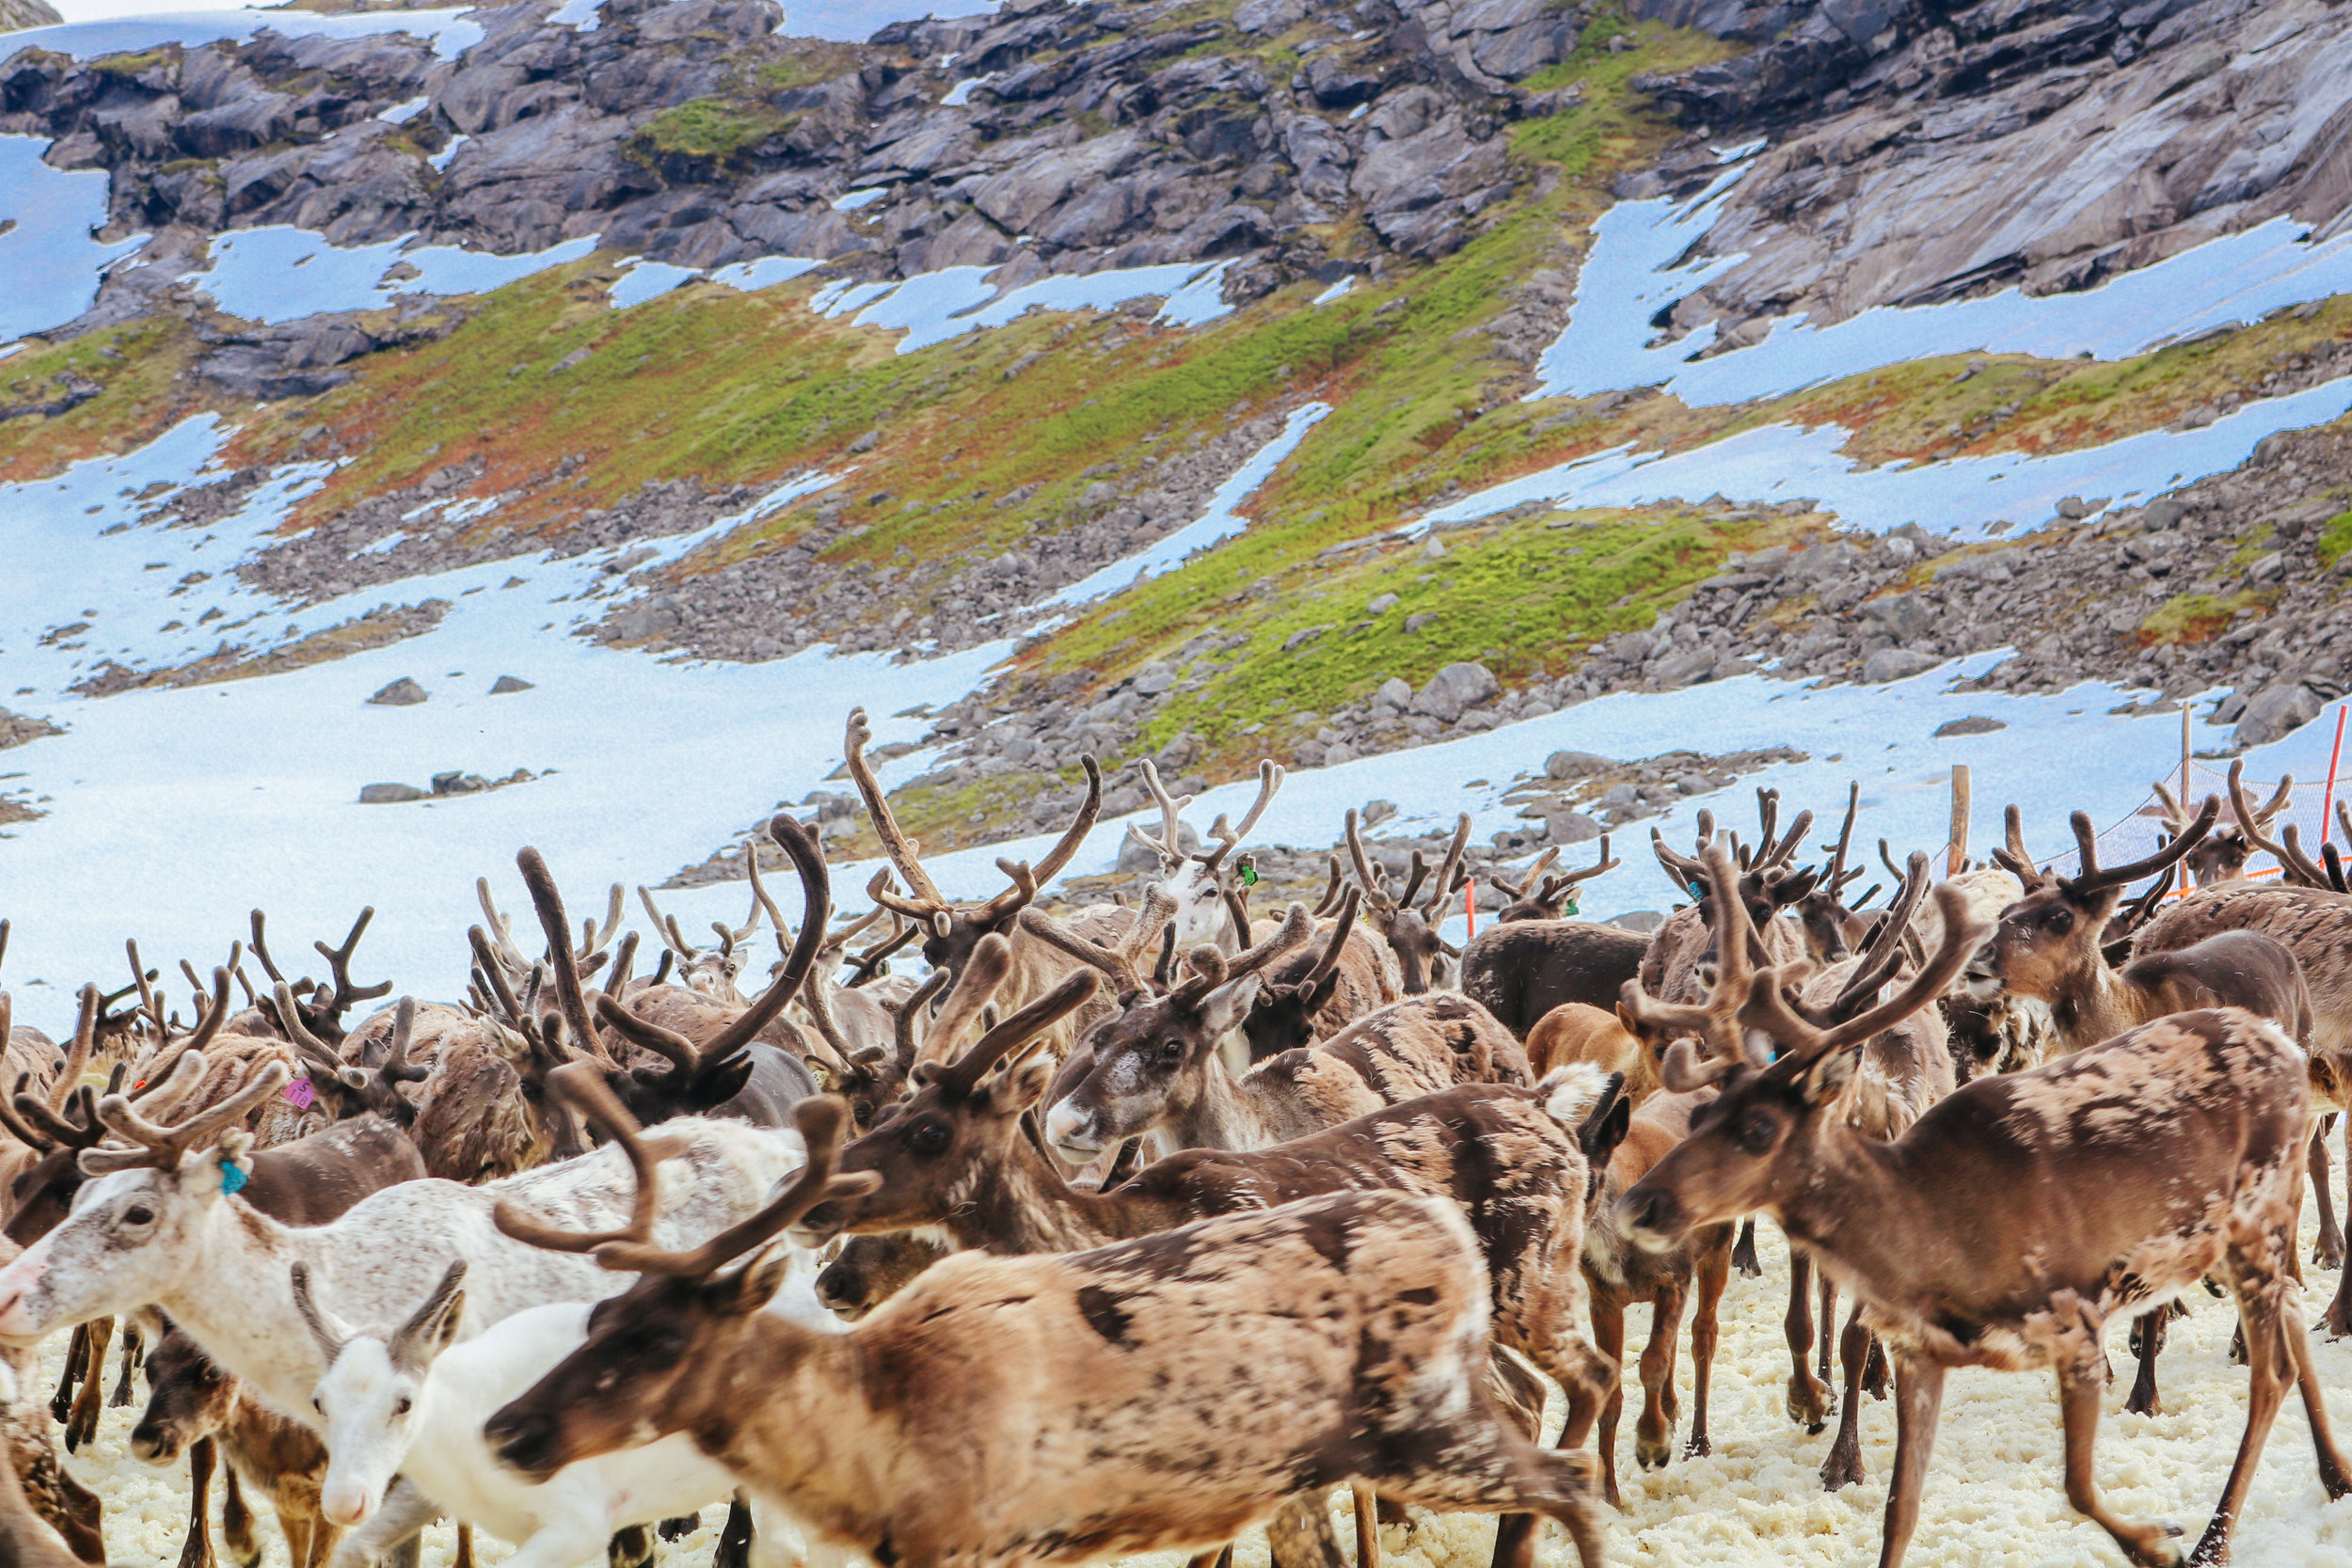 myths and facts about sami reindeer herding